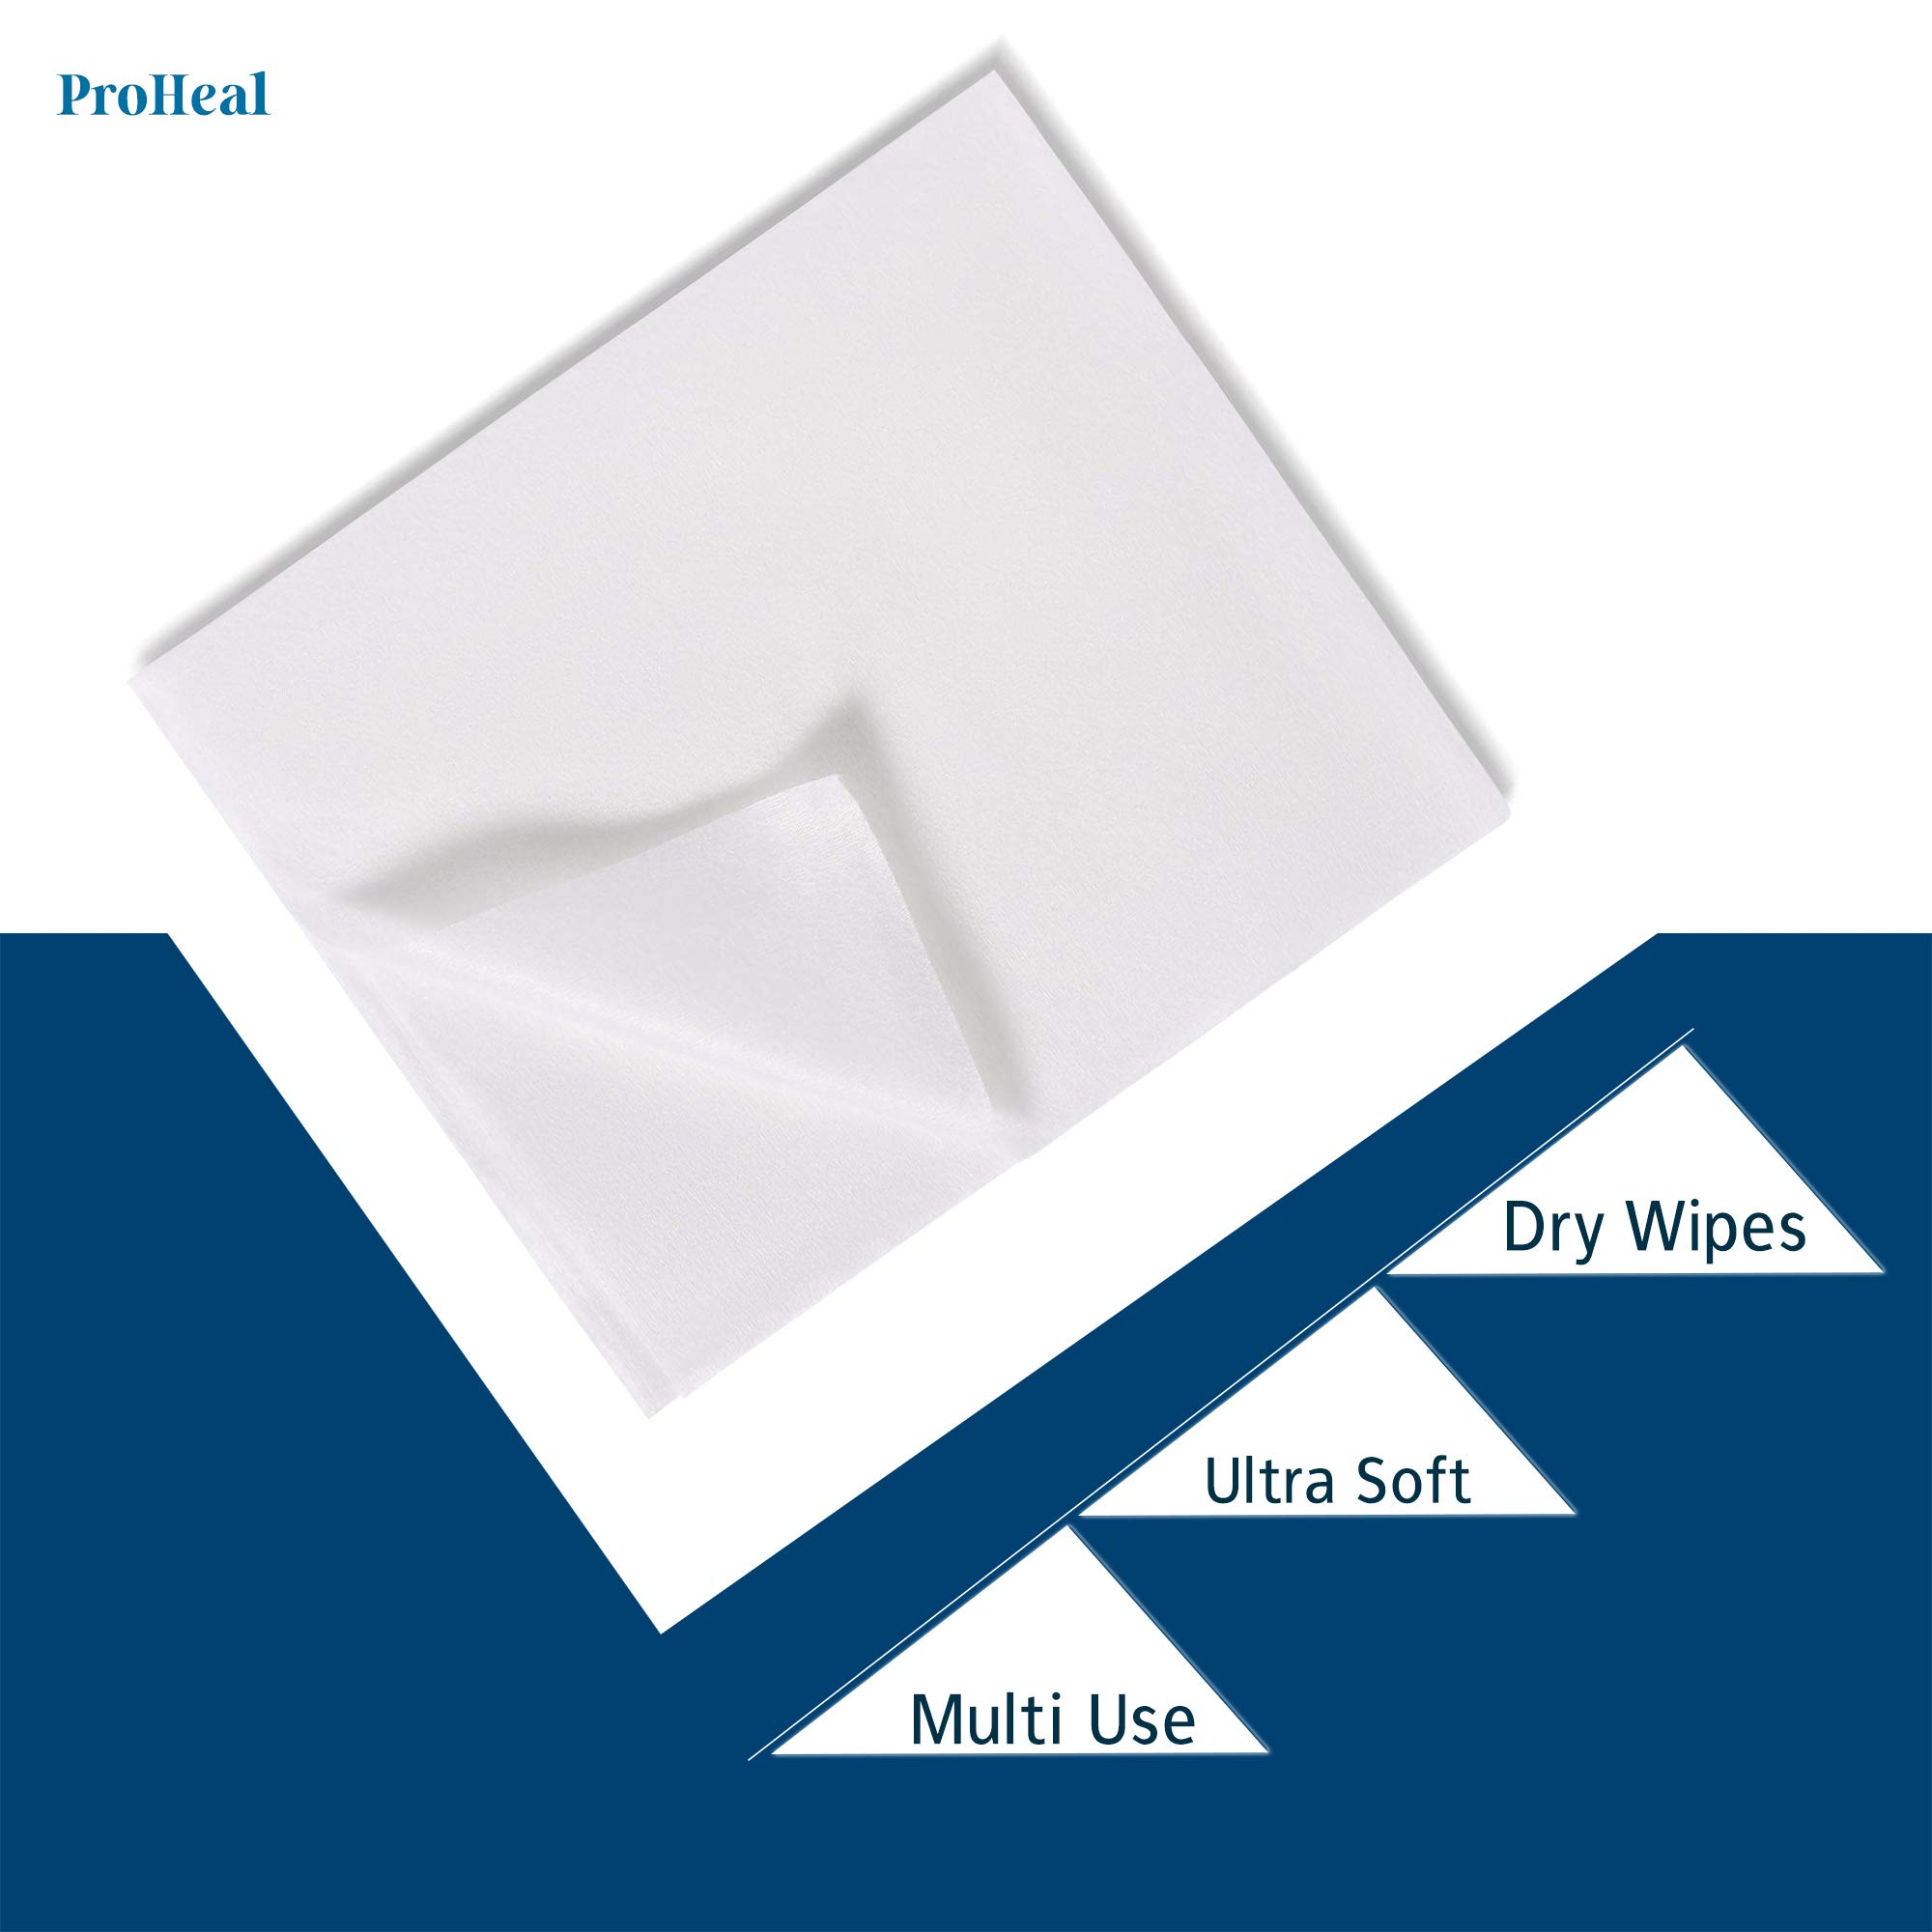 Disposable Dry Wipes - Ultra Soft Non-Moistened Cleansing Cloths for Adults, Incontinence, Baby Care, Makeup Removal - Hospital Grade, Durable, Absorbent - by ProHeal (1,000 Count (20 Pack Case))